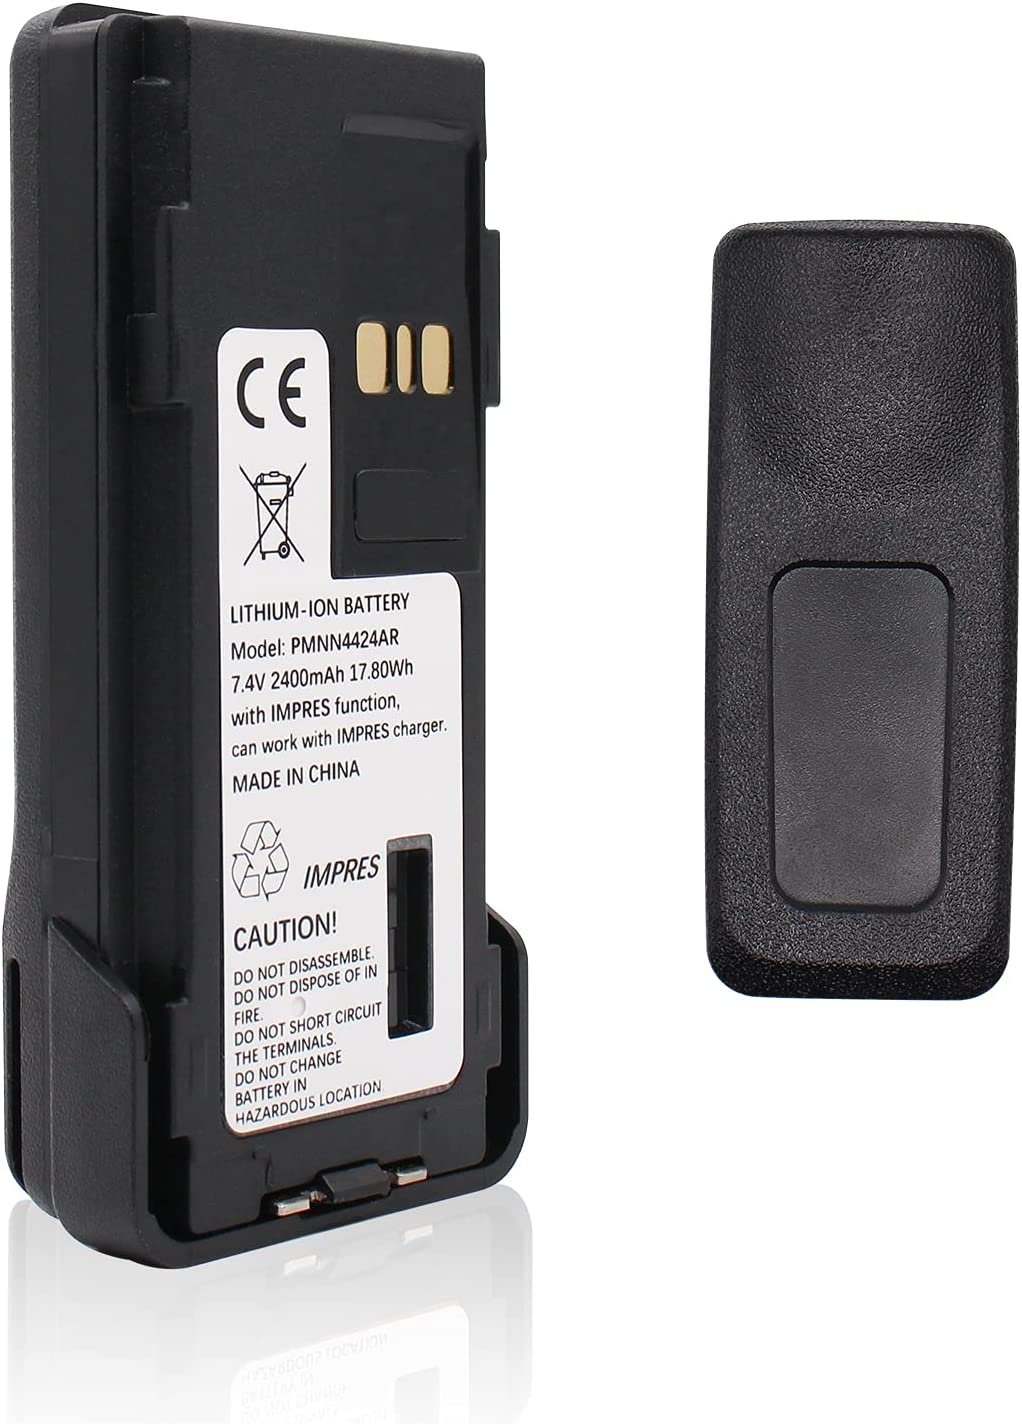 At the price of surprise 7.4V 2400mAh PMNN4424AR IMPRES Rechargeable for Li-ion 67% OFF of fixed price M Battery